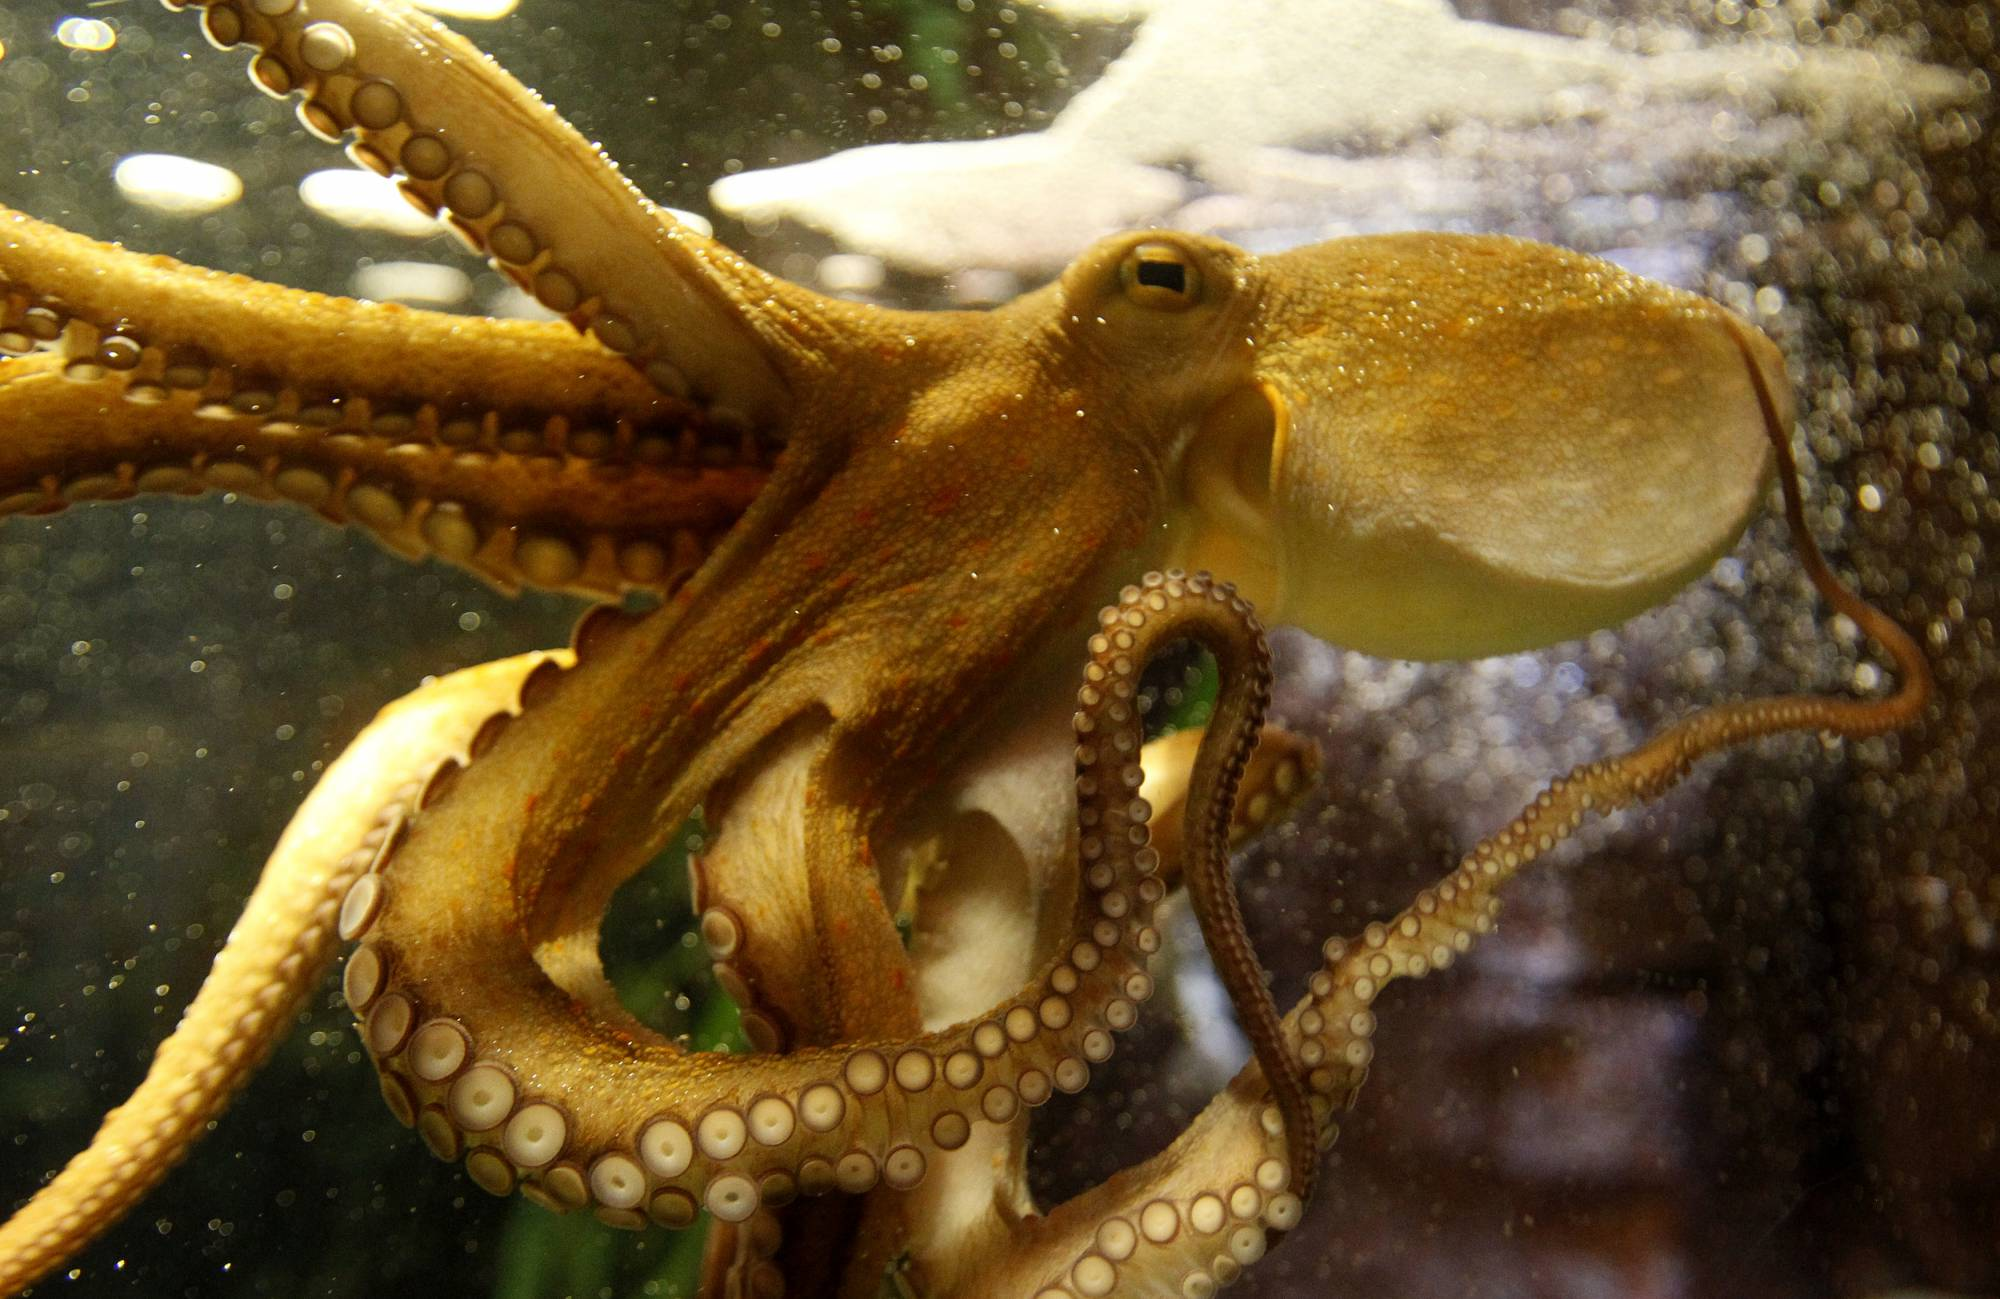 Octopus Ophira is pictured as it predicts Germany's victory in Women's World Cup soccer match at Sea Life Aquarium in Berlin